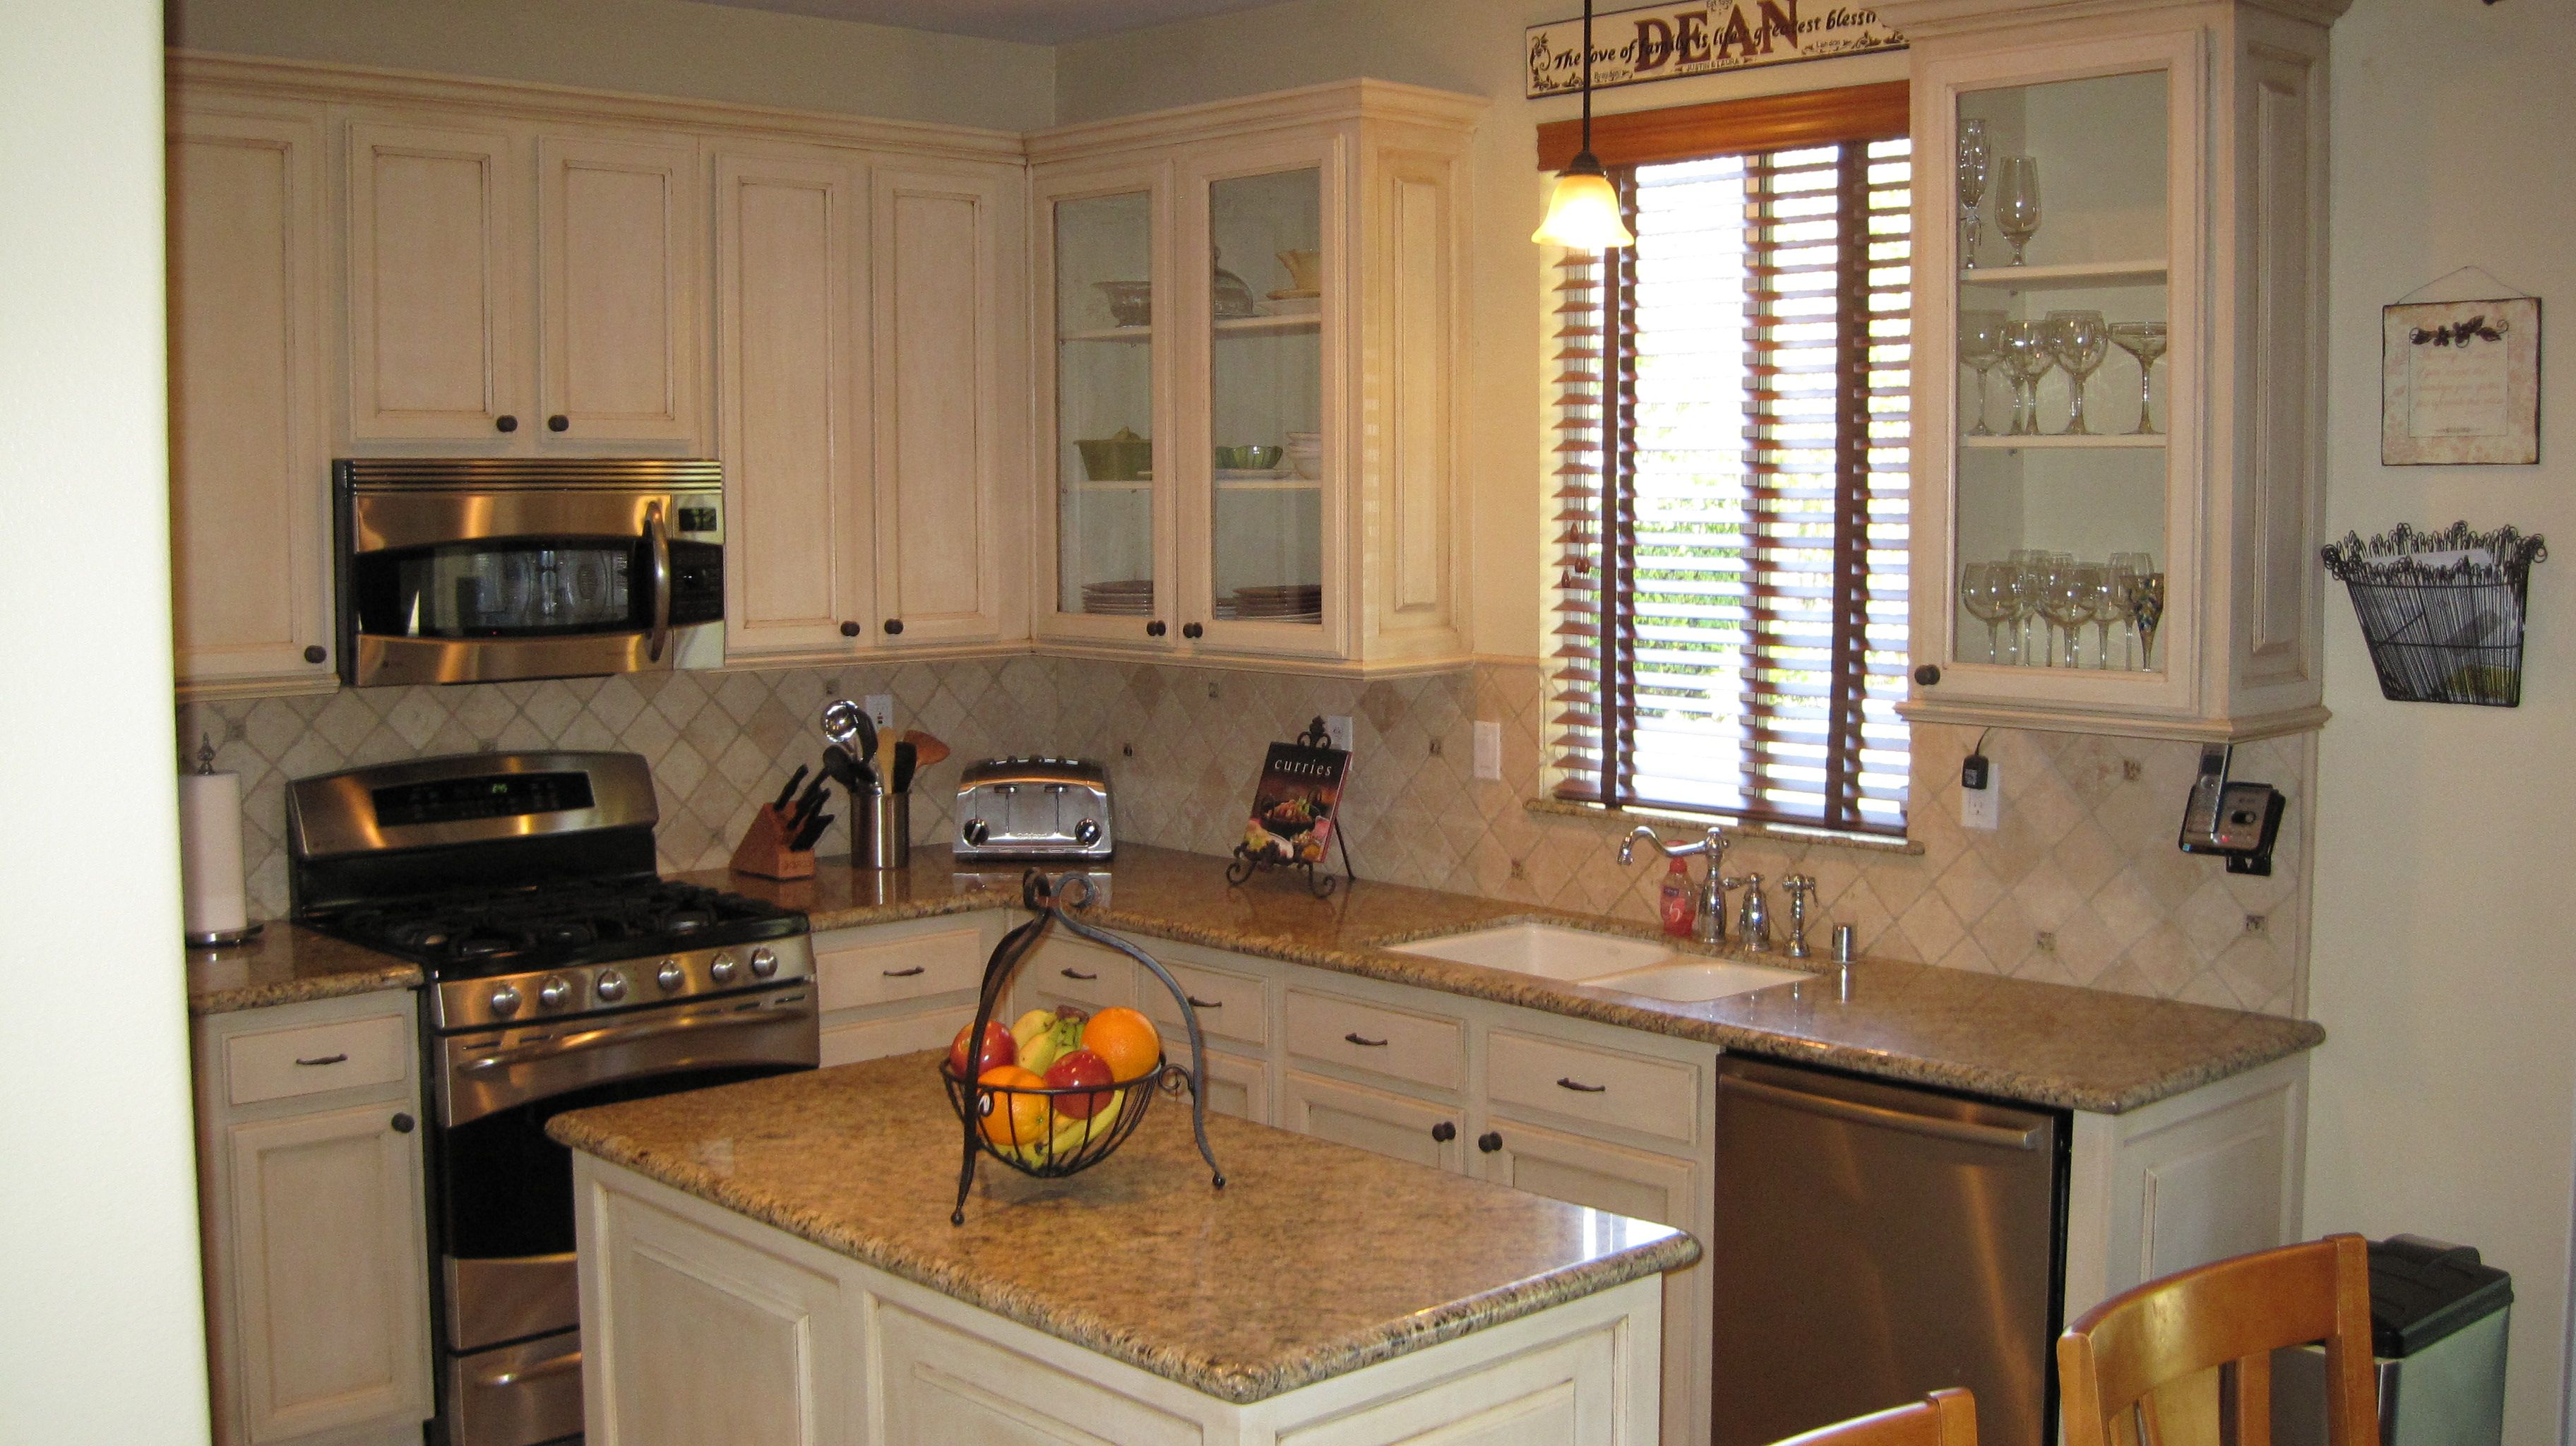 Easy artisan making refinishing easy for everyone for Refinishing old kitchen cabinets